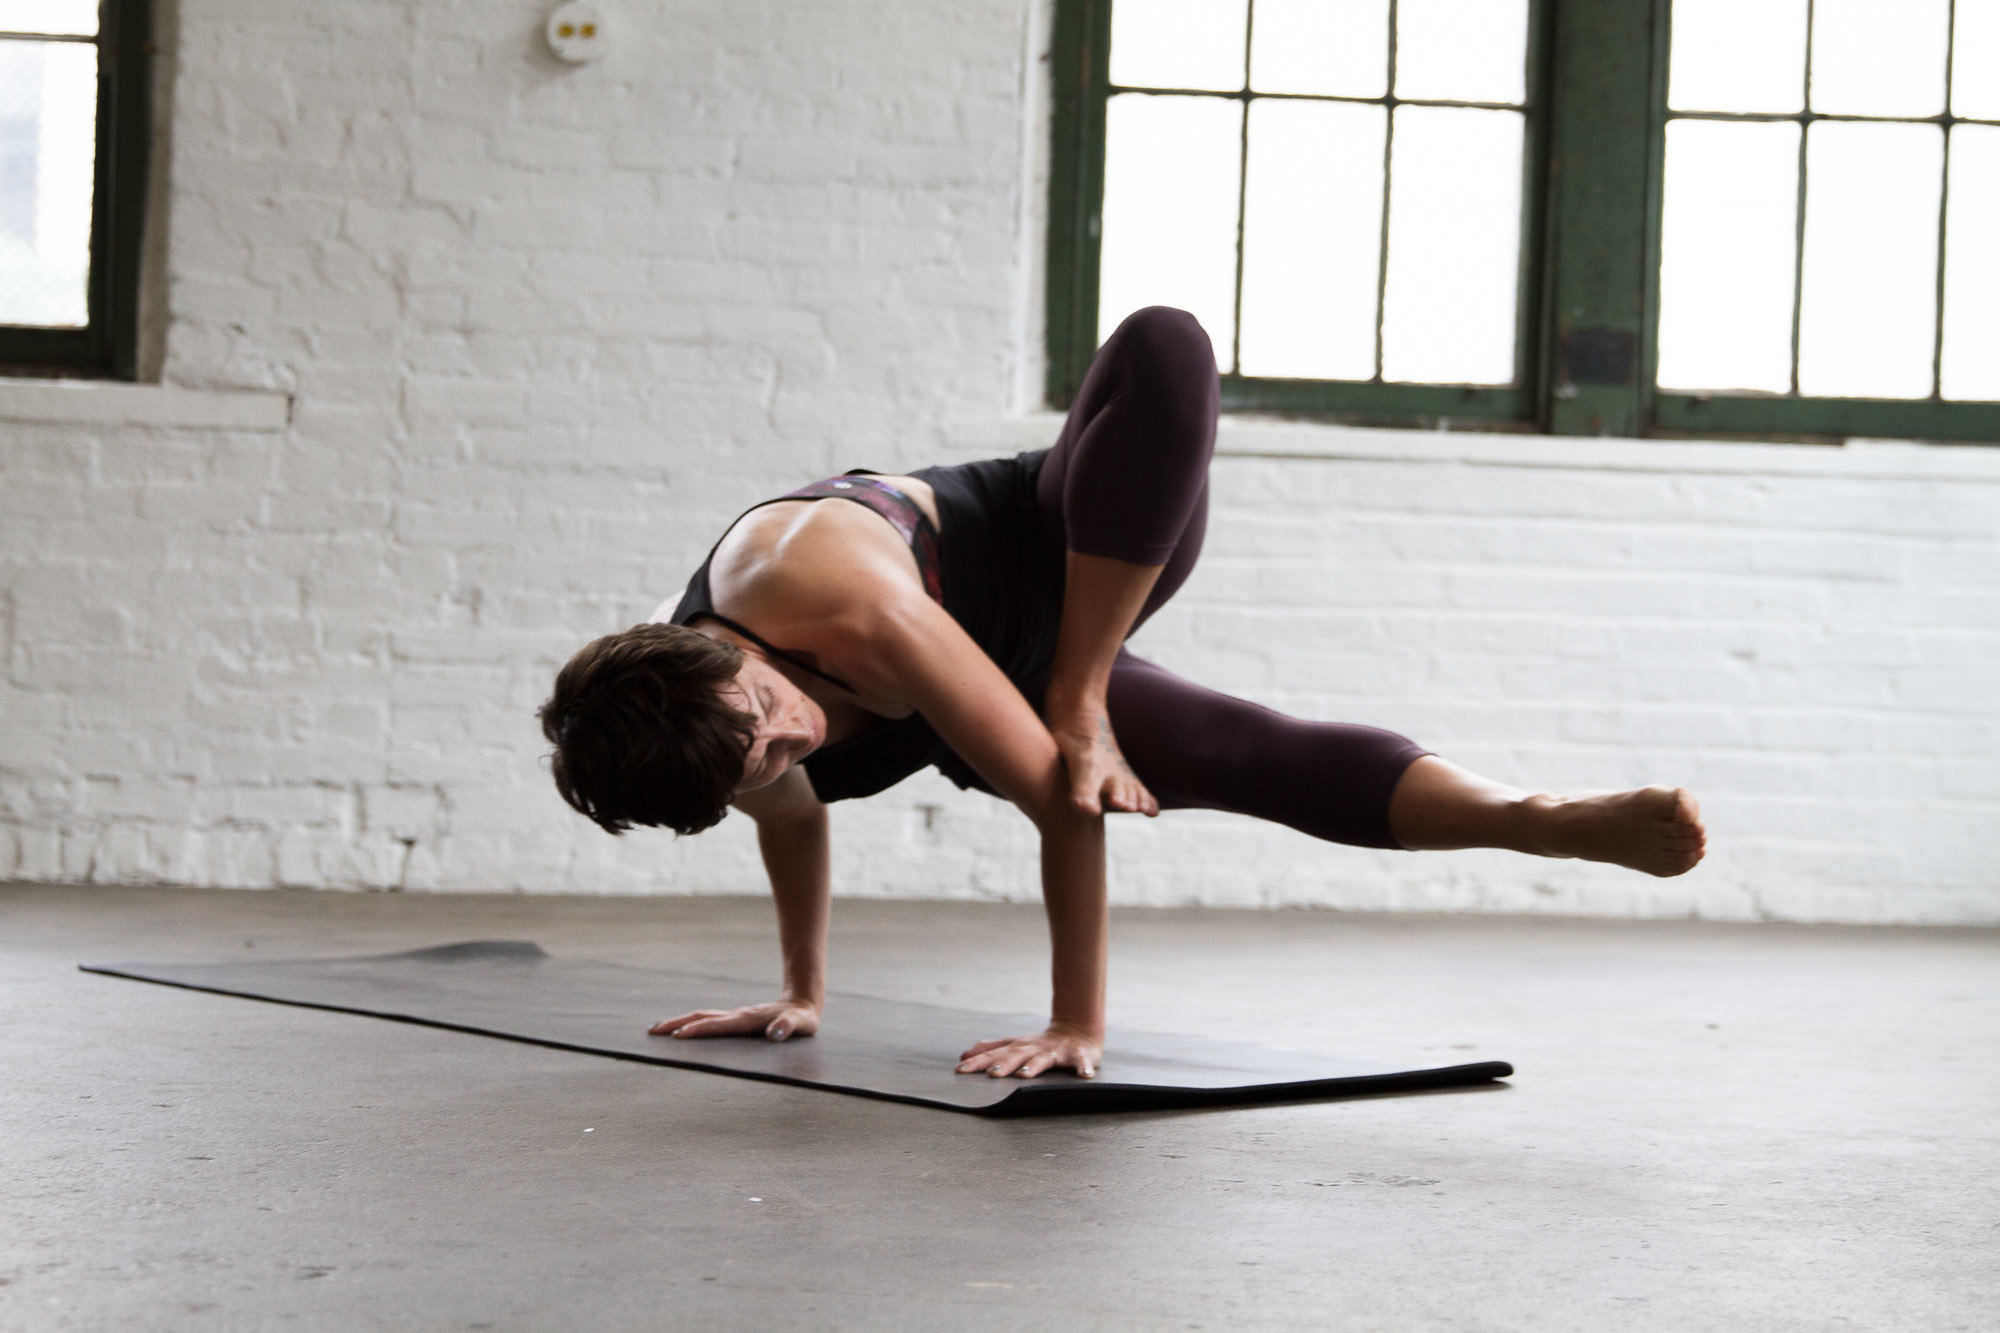 Here's a complex yoga pose that comes easy to me. It's not something I worked for.It's simply a pose that was offered and my body could execute all of the demands required. There are less complex poses that I cannot do. Such is movement ;)